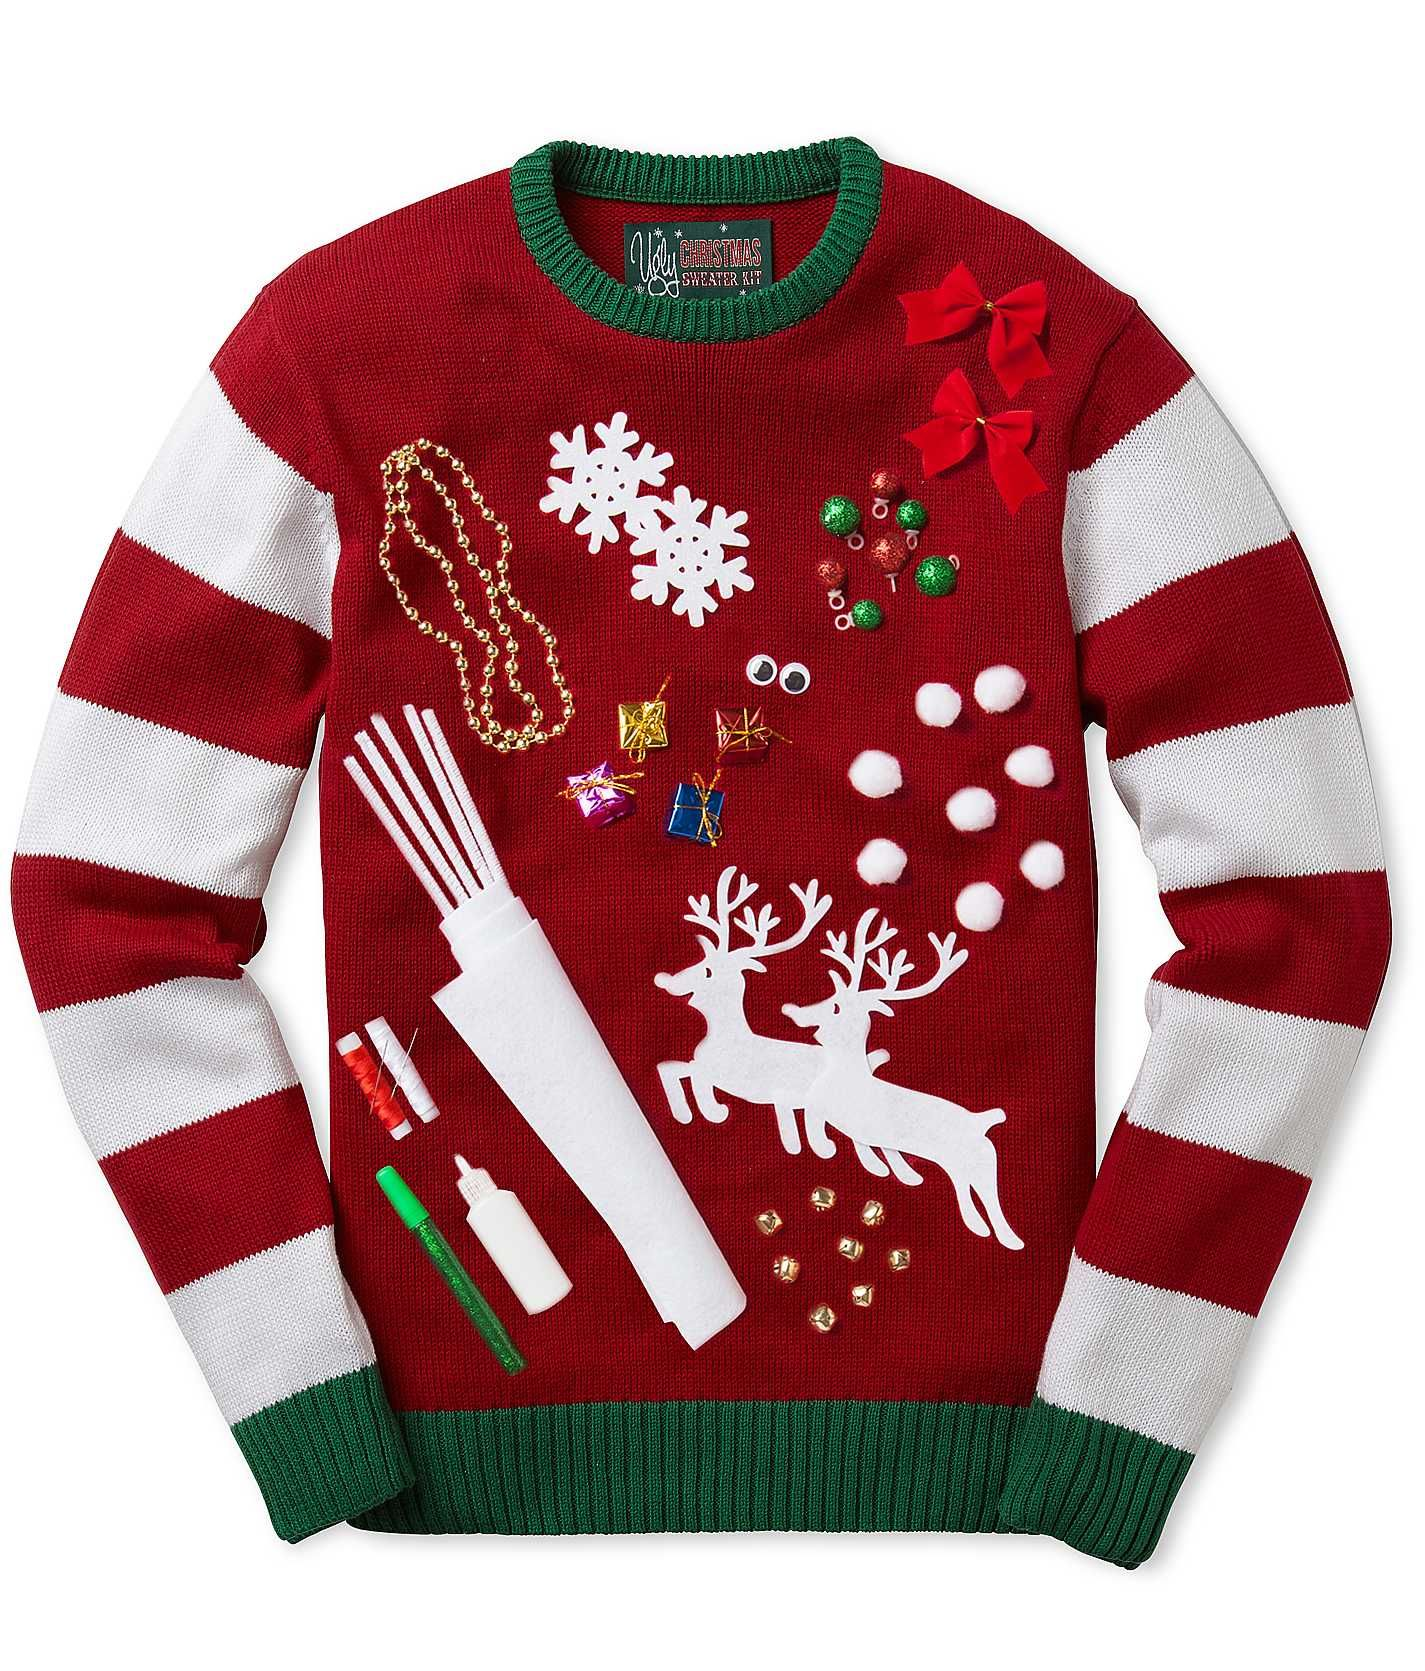 The Best Ugly Christmas Sweaters Thatll Be a Hit at Every Holiday Party